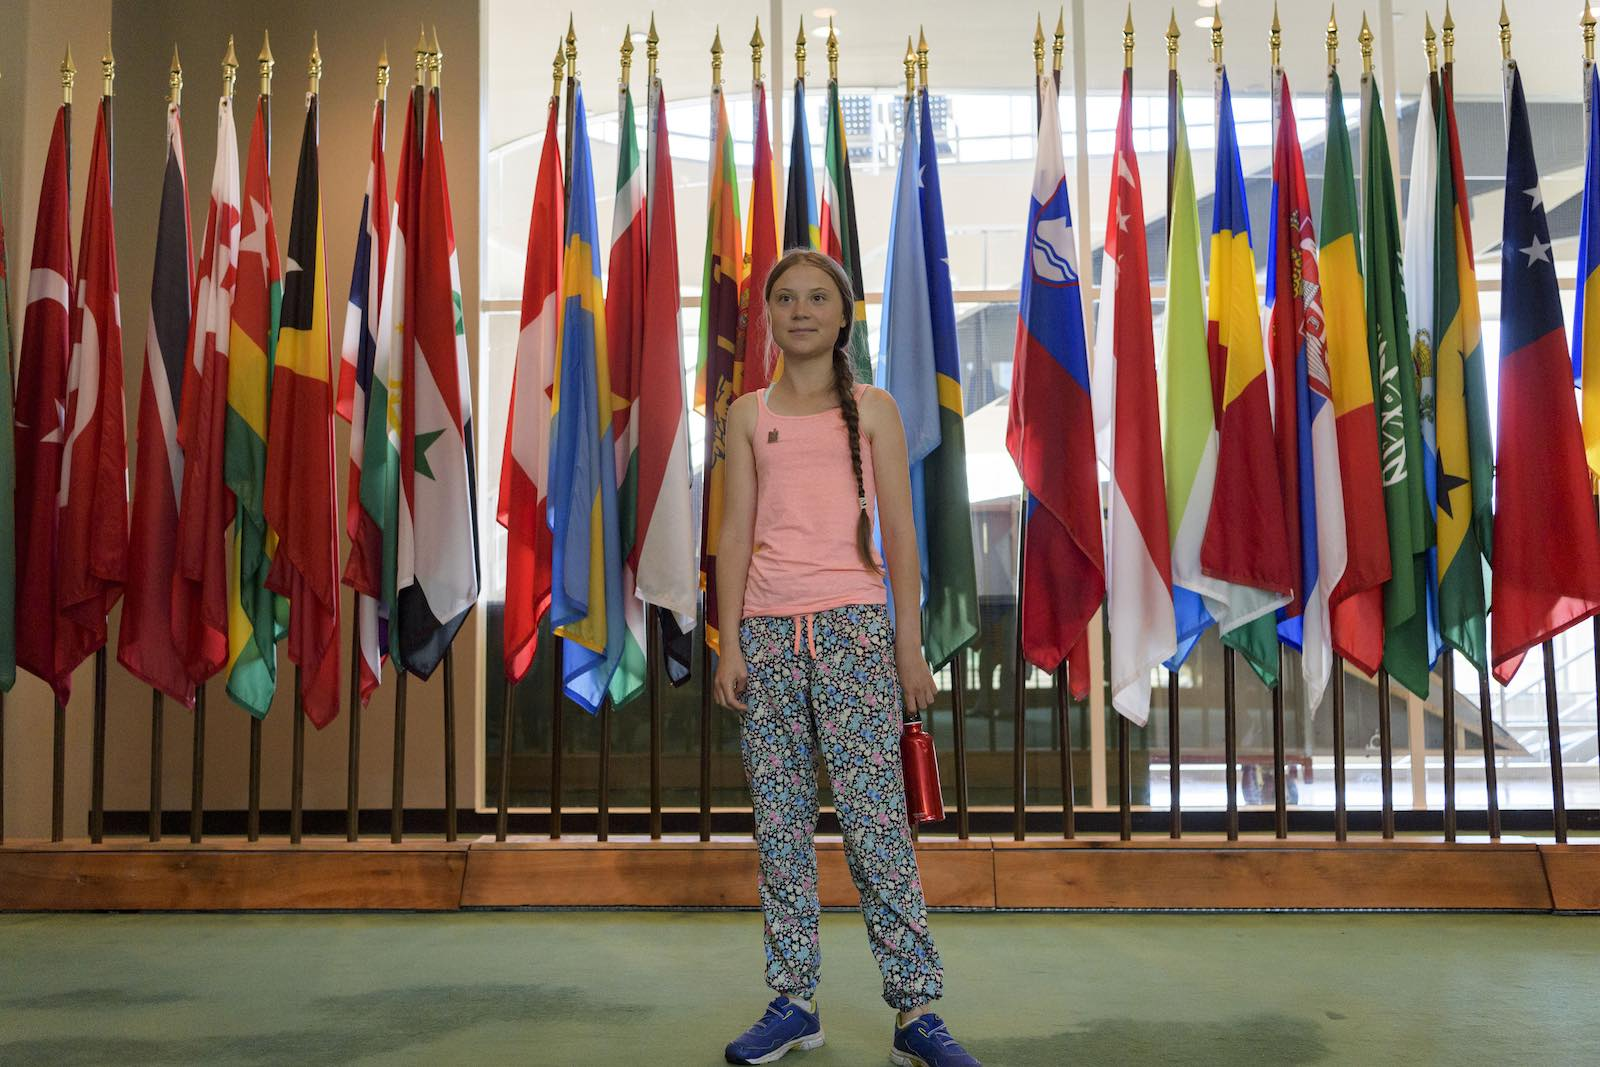 Greta Thunberg, climate activist from Sweden, poses outside of the General Assembly Hall at UN headquarters in New York (Photo: Manuel Elias/United Nations)